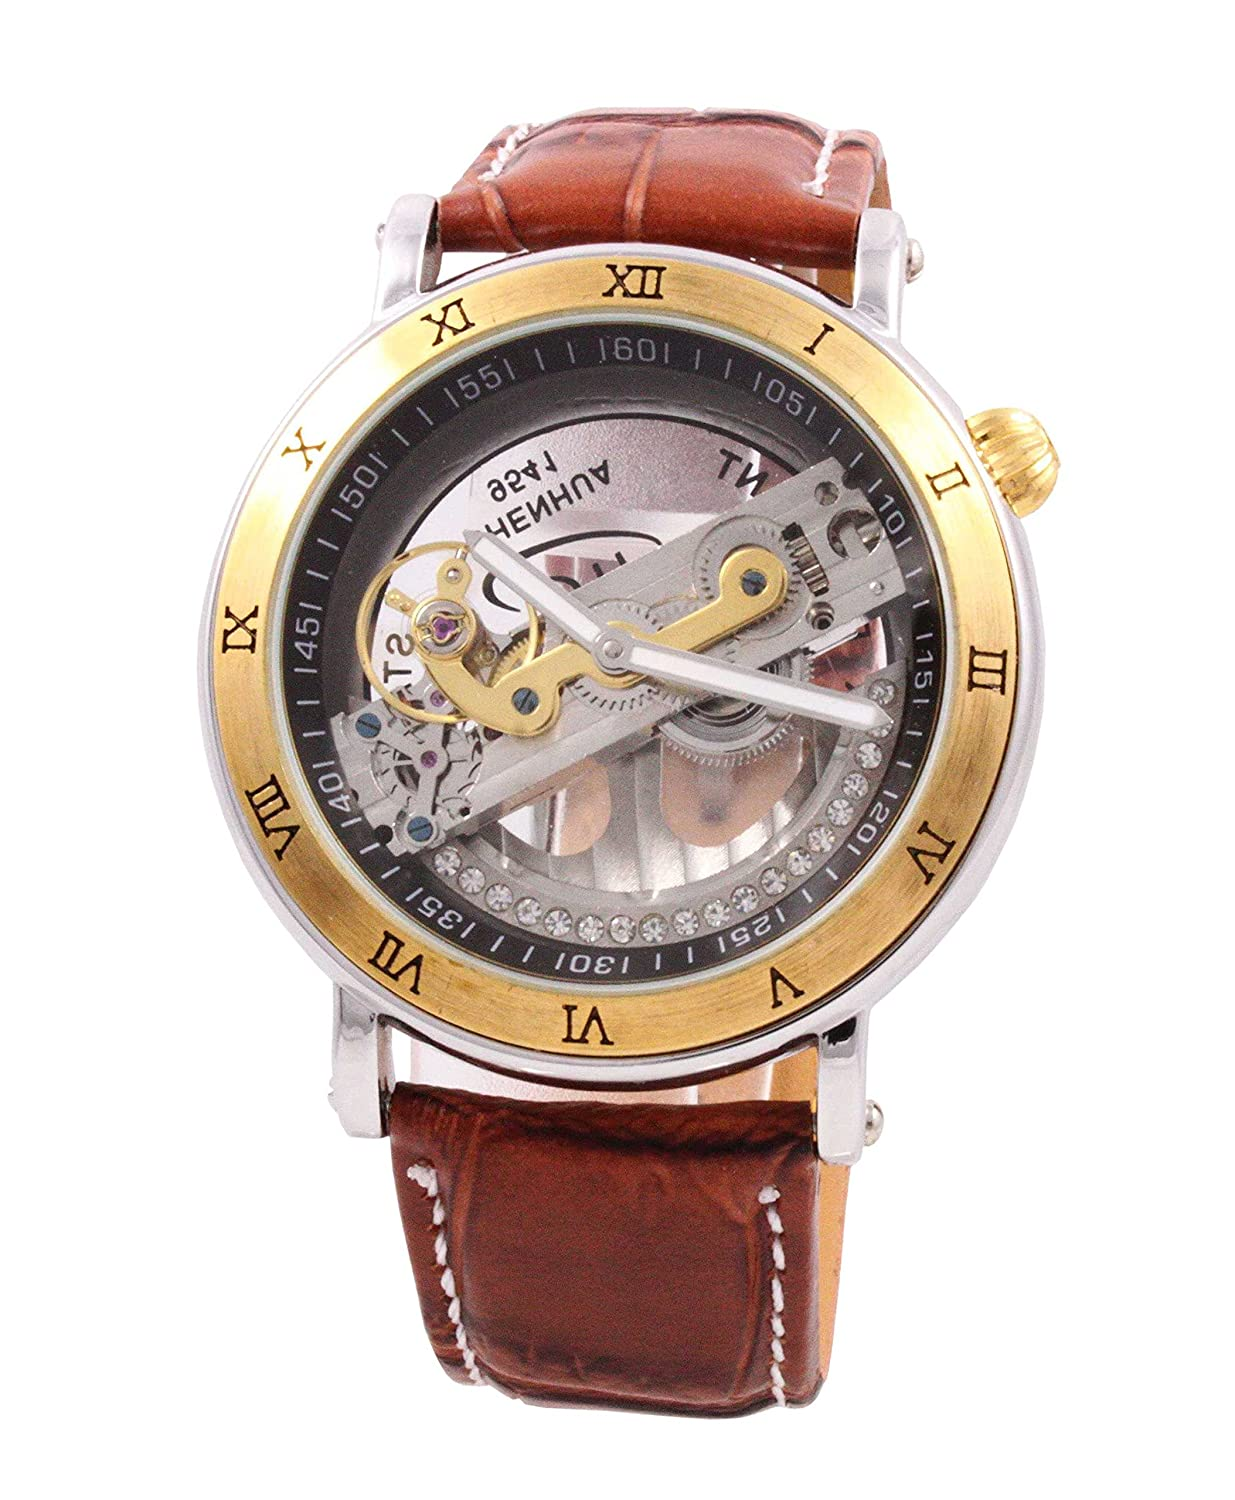 Amazon.com: Mens Mechanical Watch Steampunk Skeleton Dial Brown Leather Band Automatic Wacht for Men AMW-83: Watches